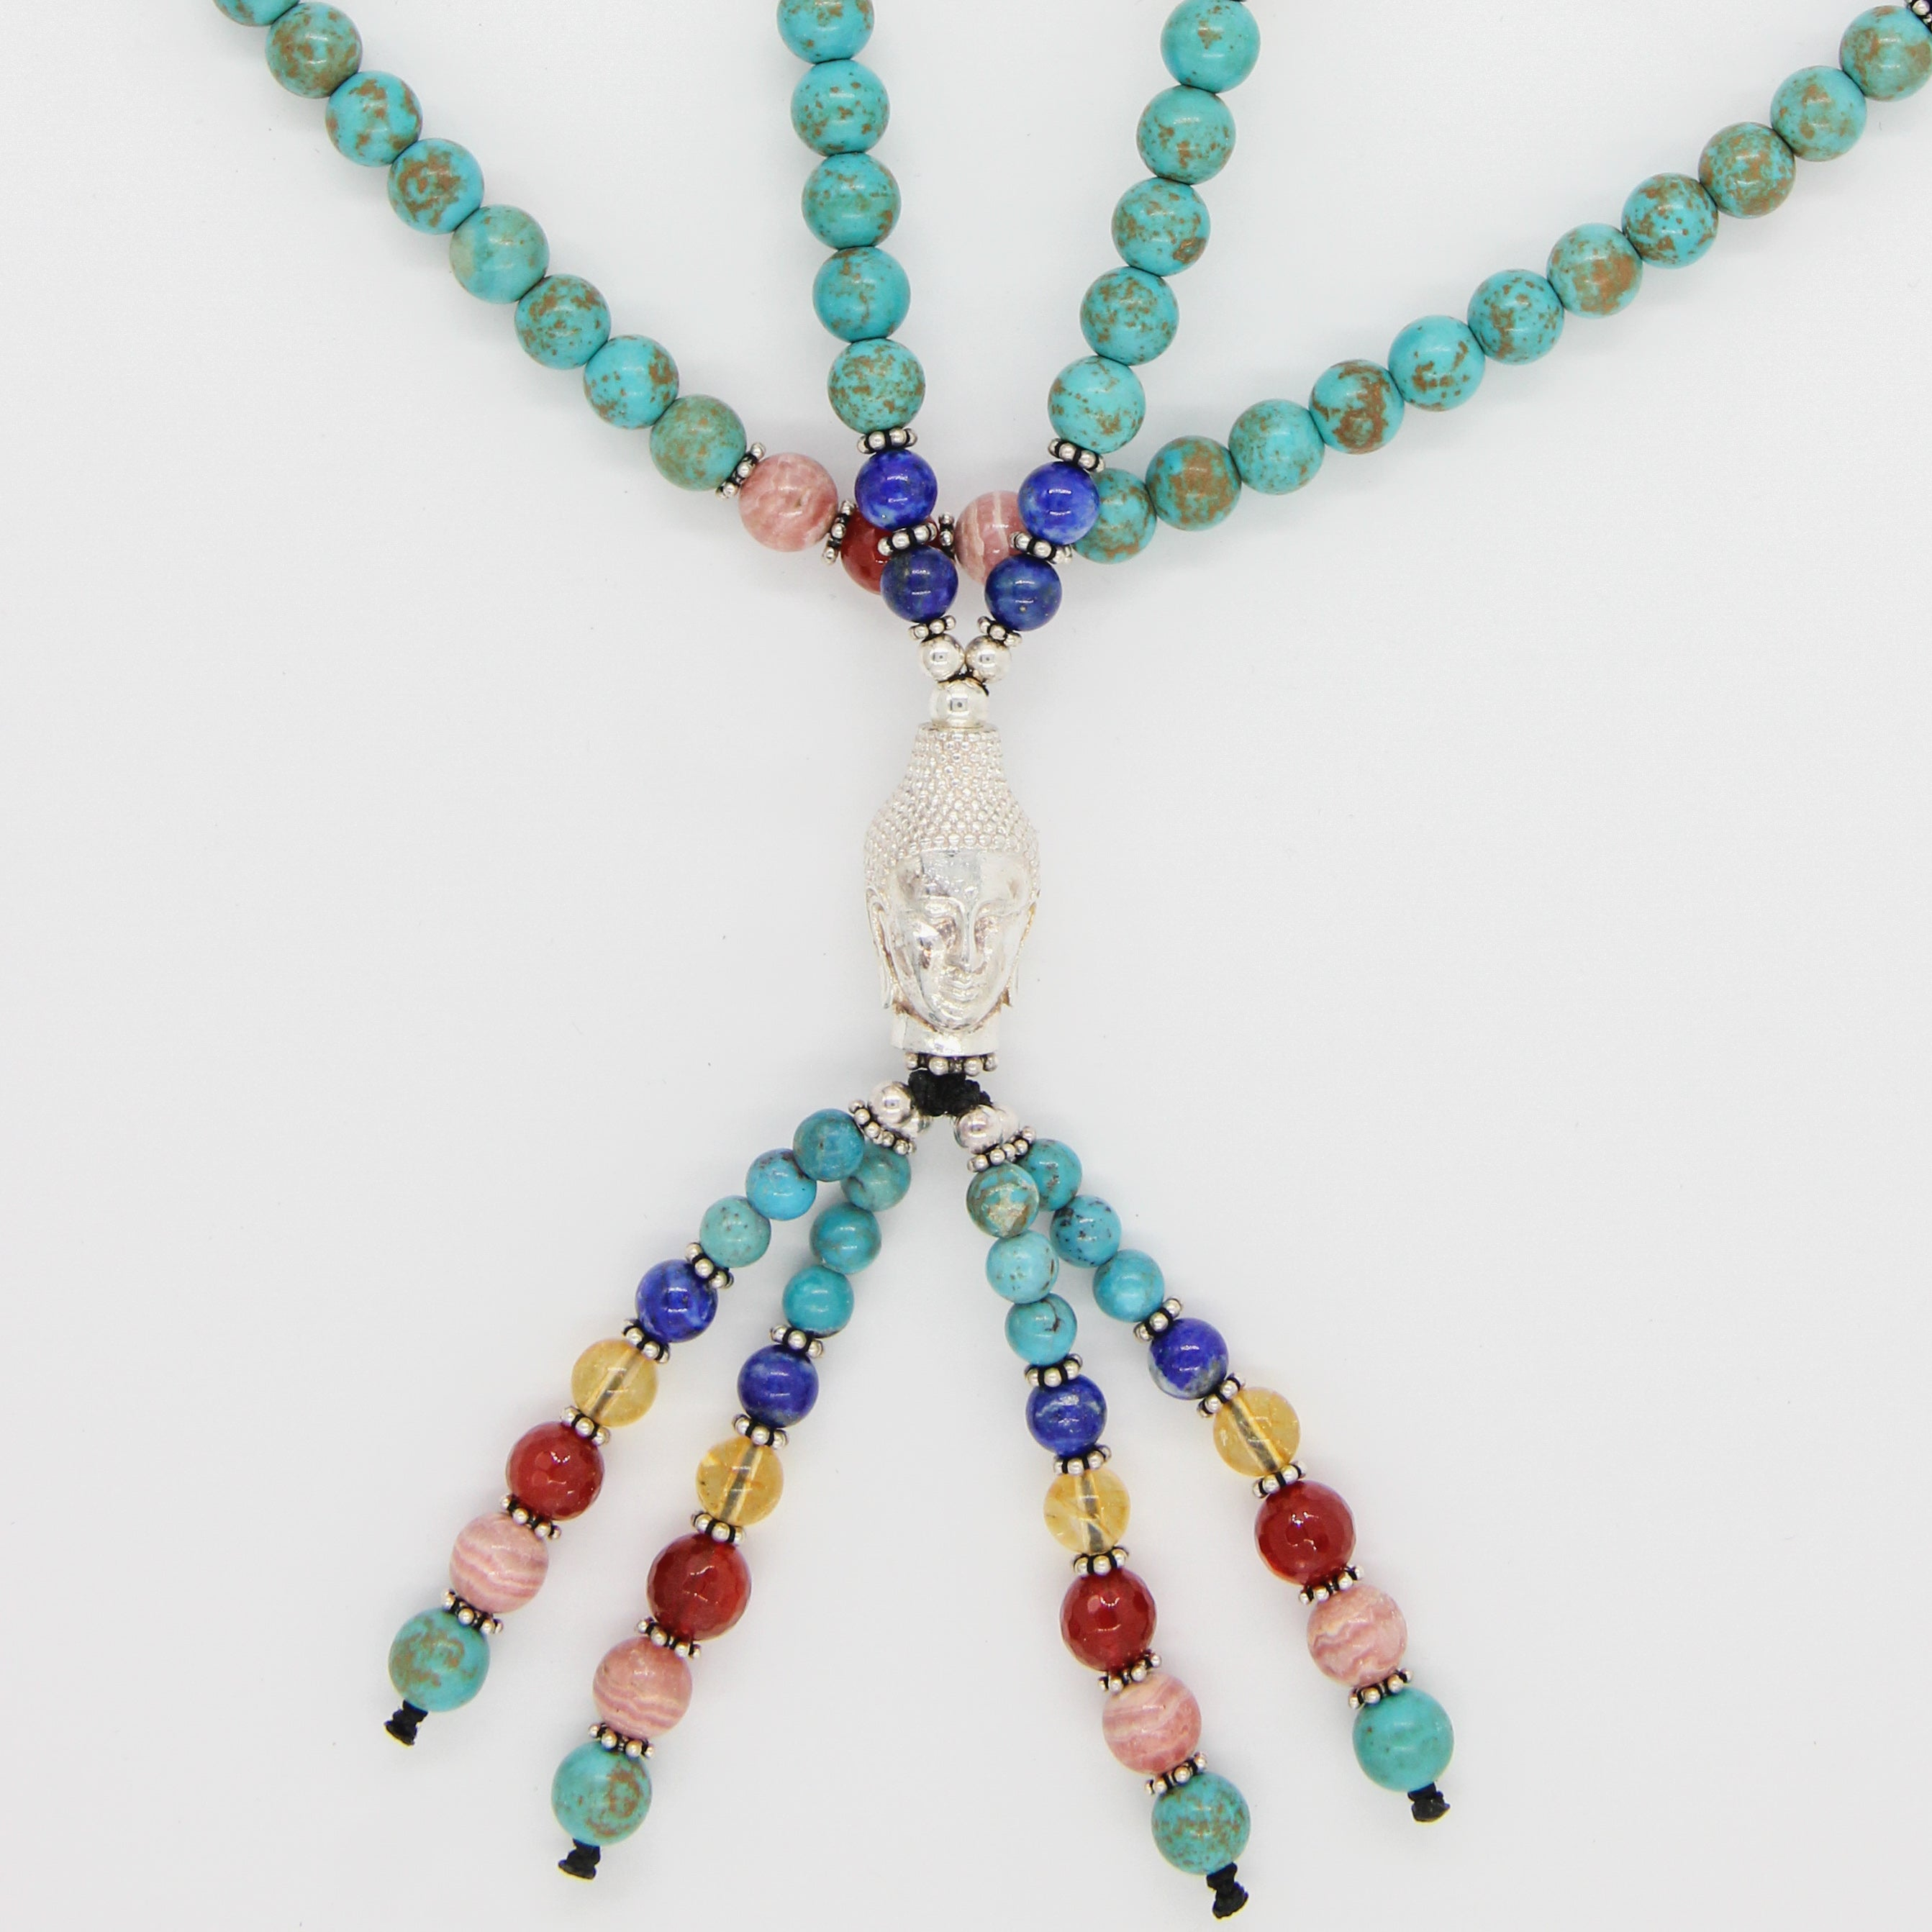 Turquoise Bead Necklace with Silver Buddha Head, Rhodochrosite, Carnelian, Citrine, Kyanite, Lapis Lazuli and Silver Beads